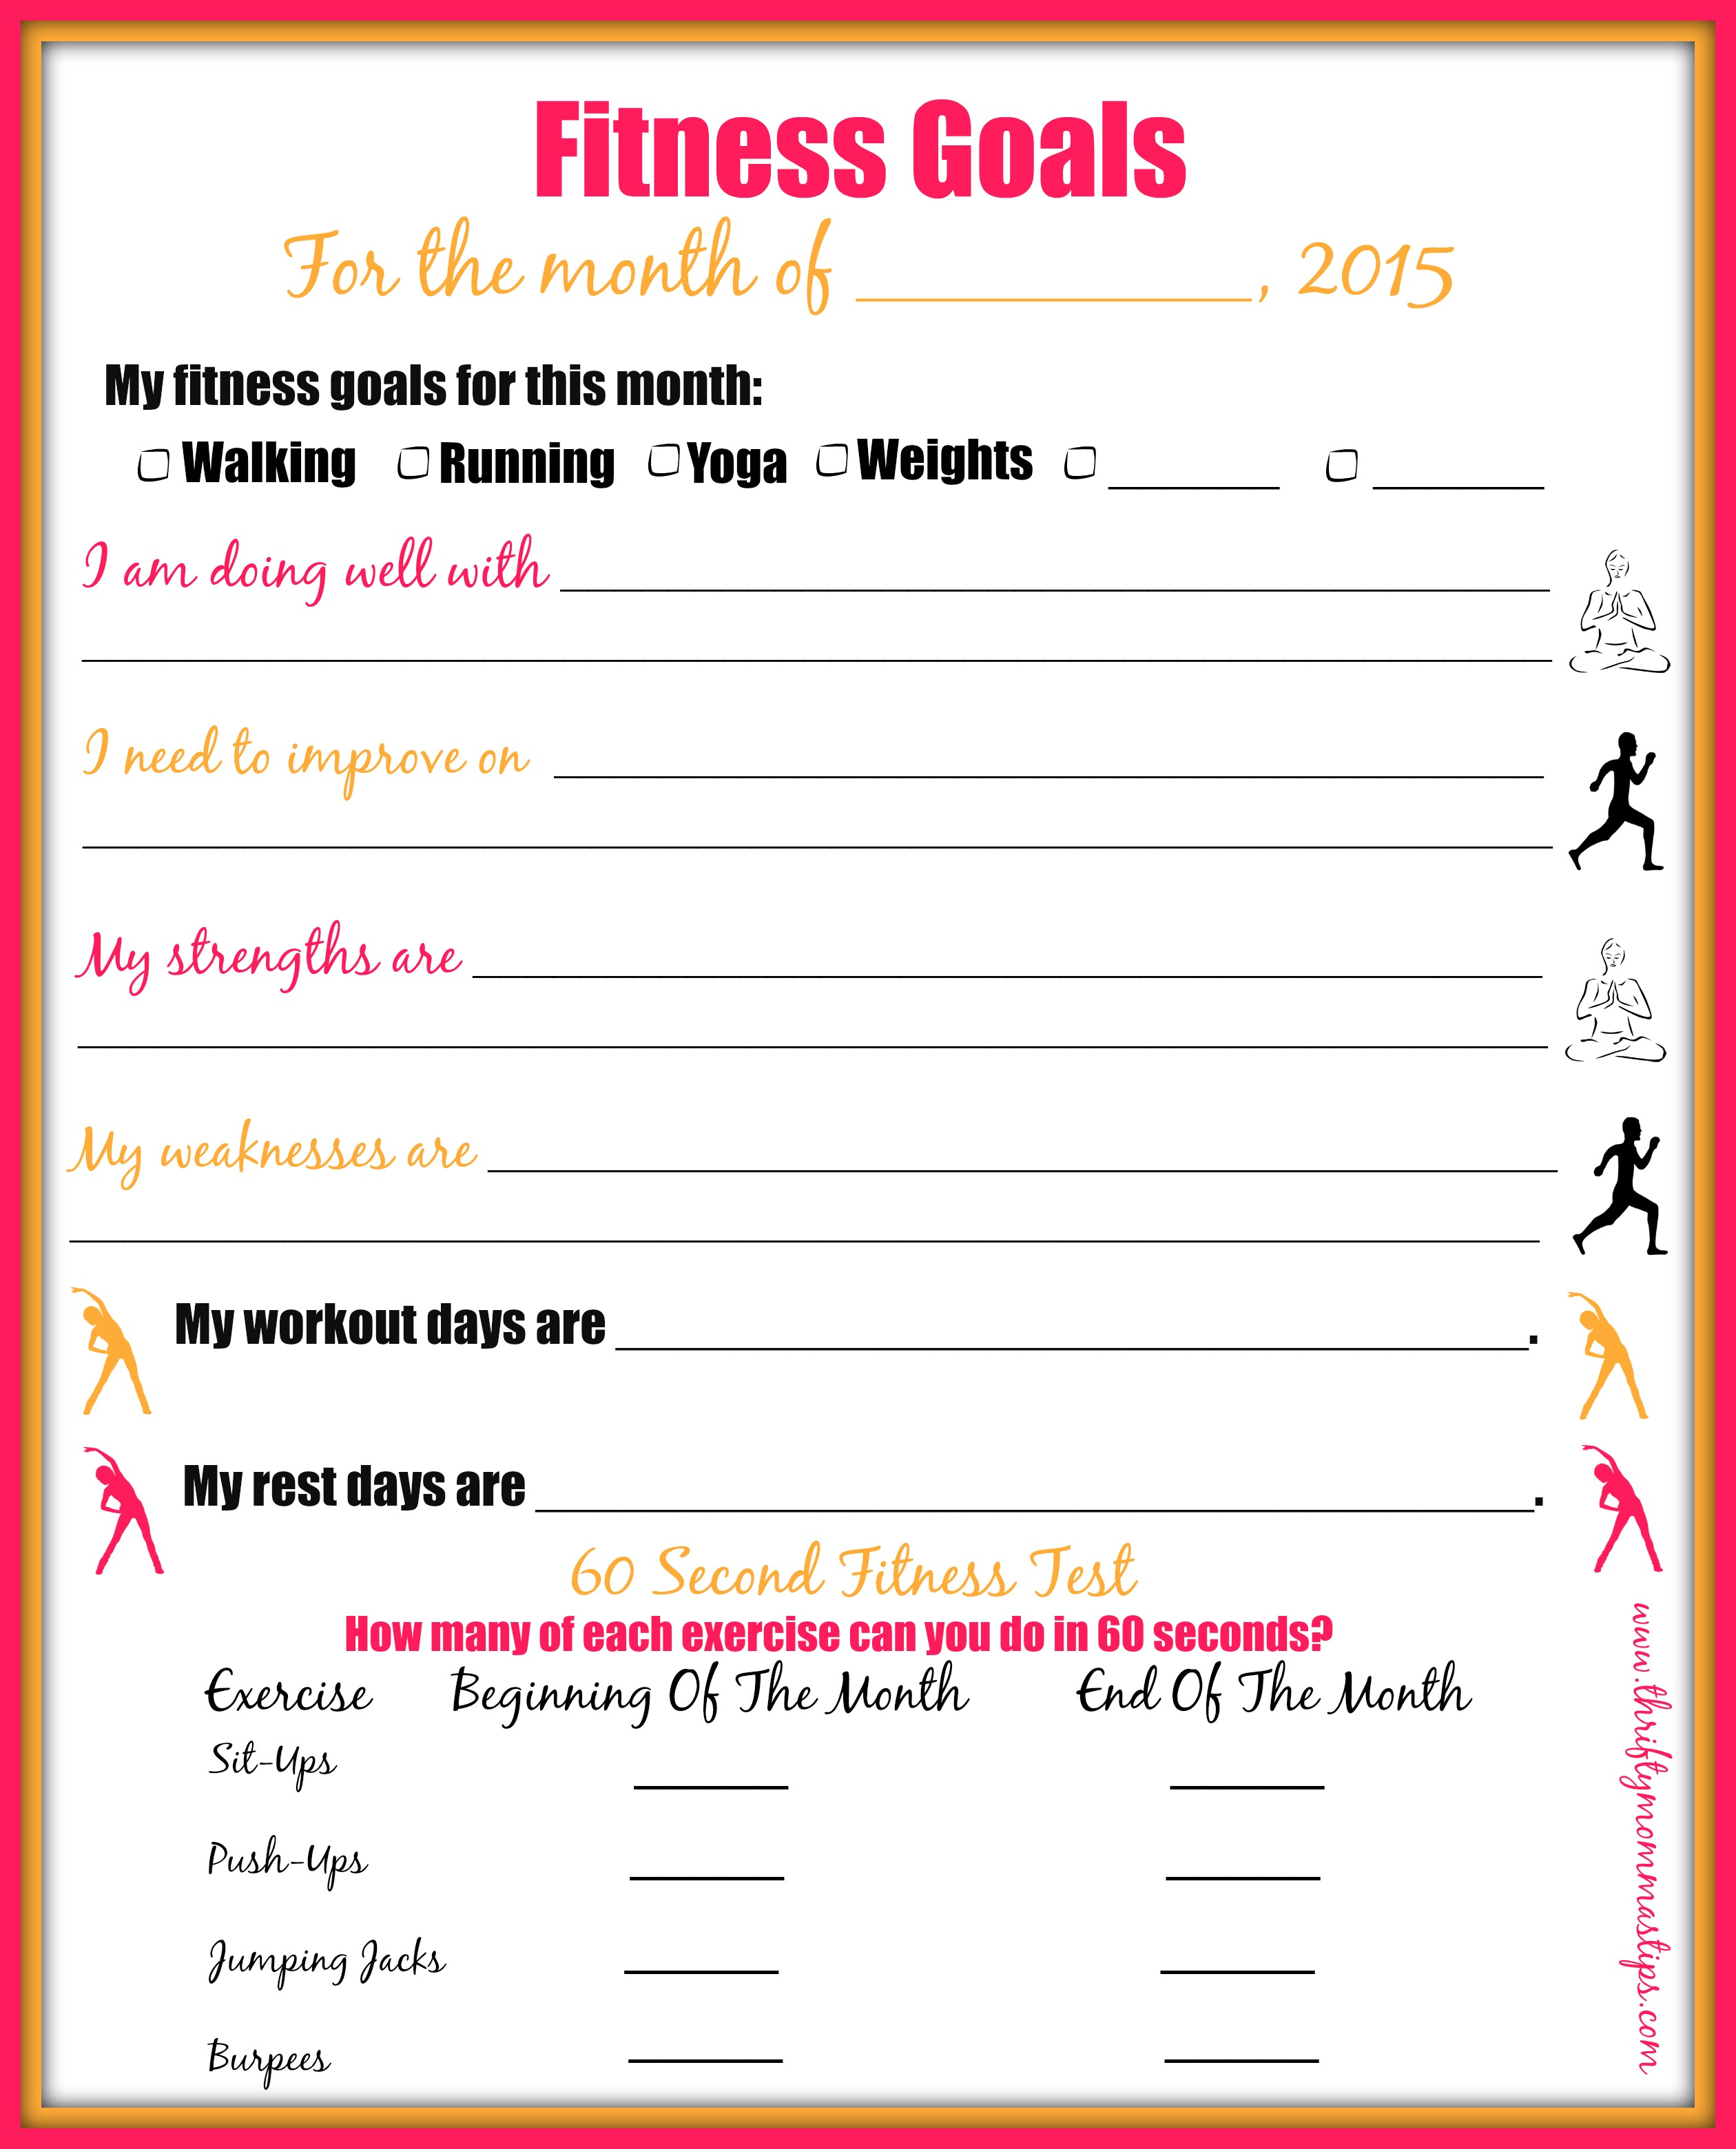 Worksheets Fitness Goals Worksheet workout goals sheet guiler ions setting fitness smart goal